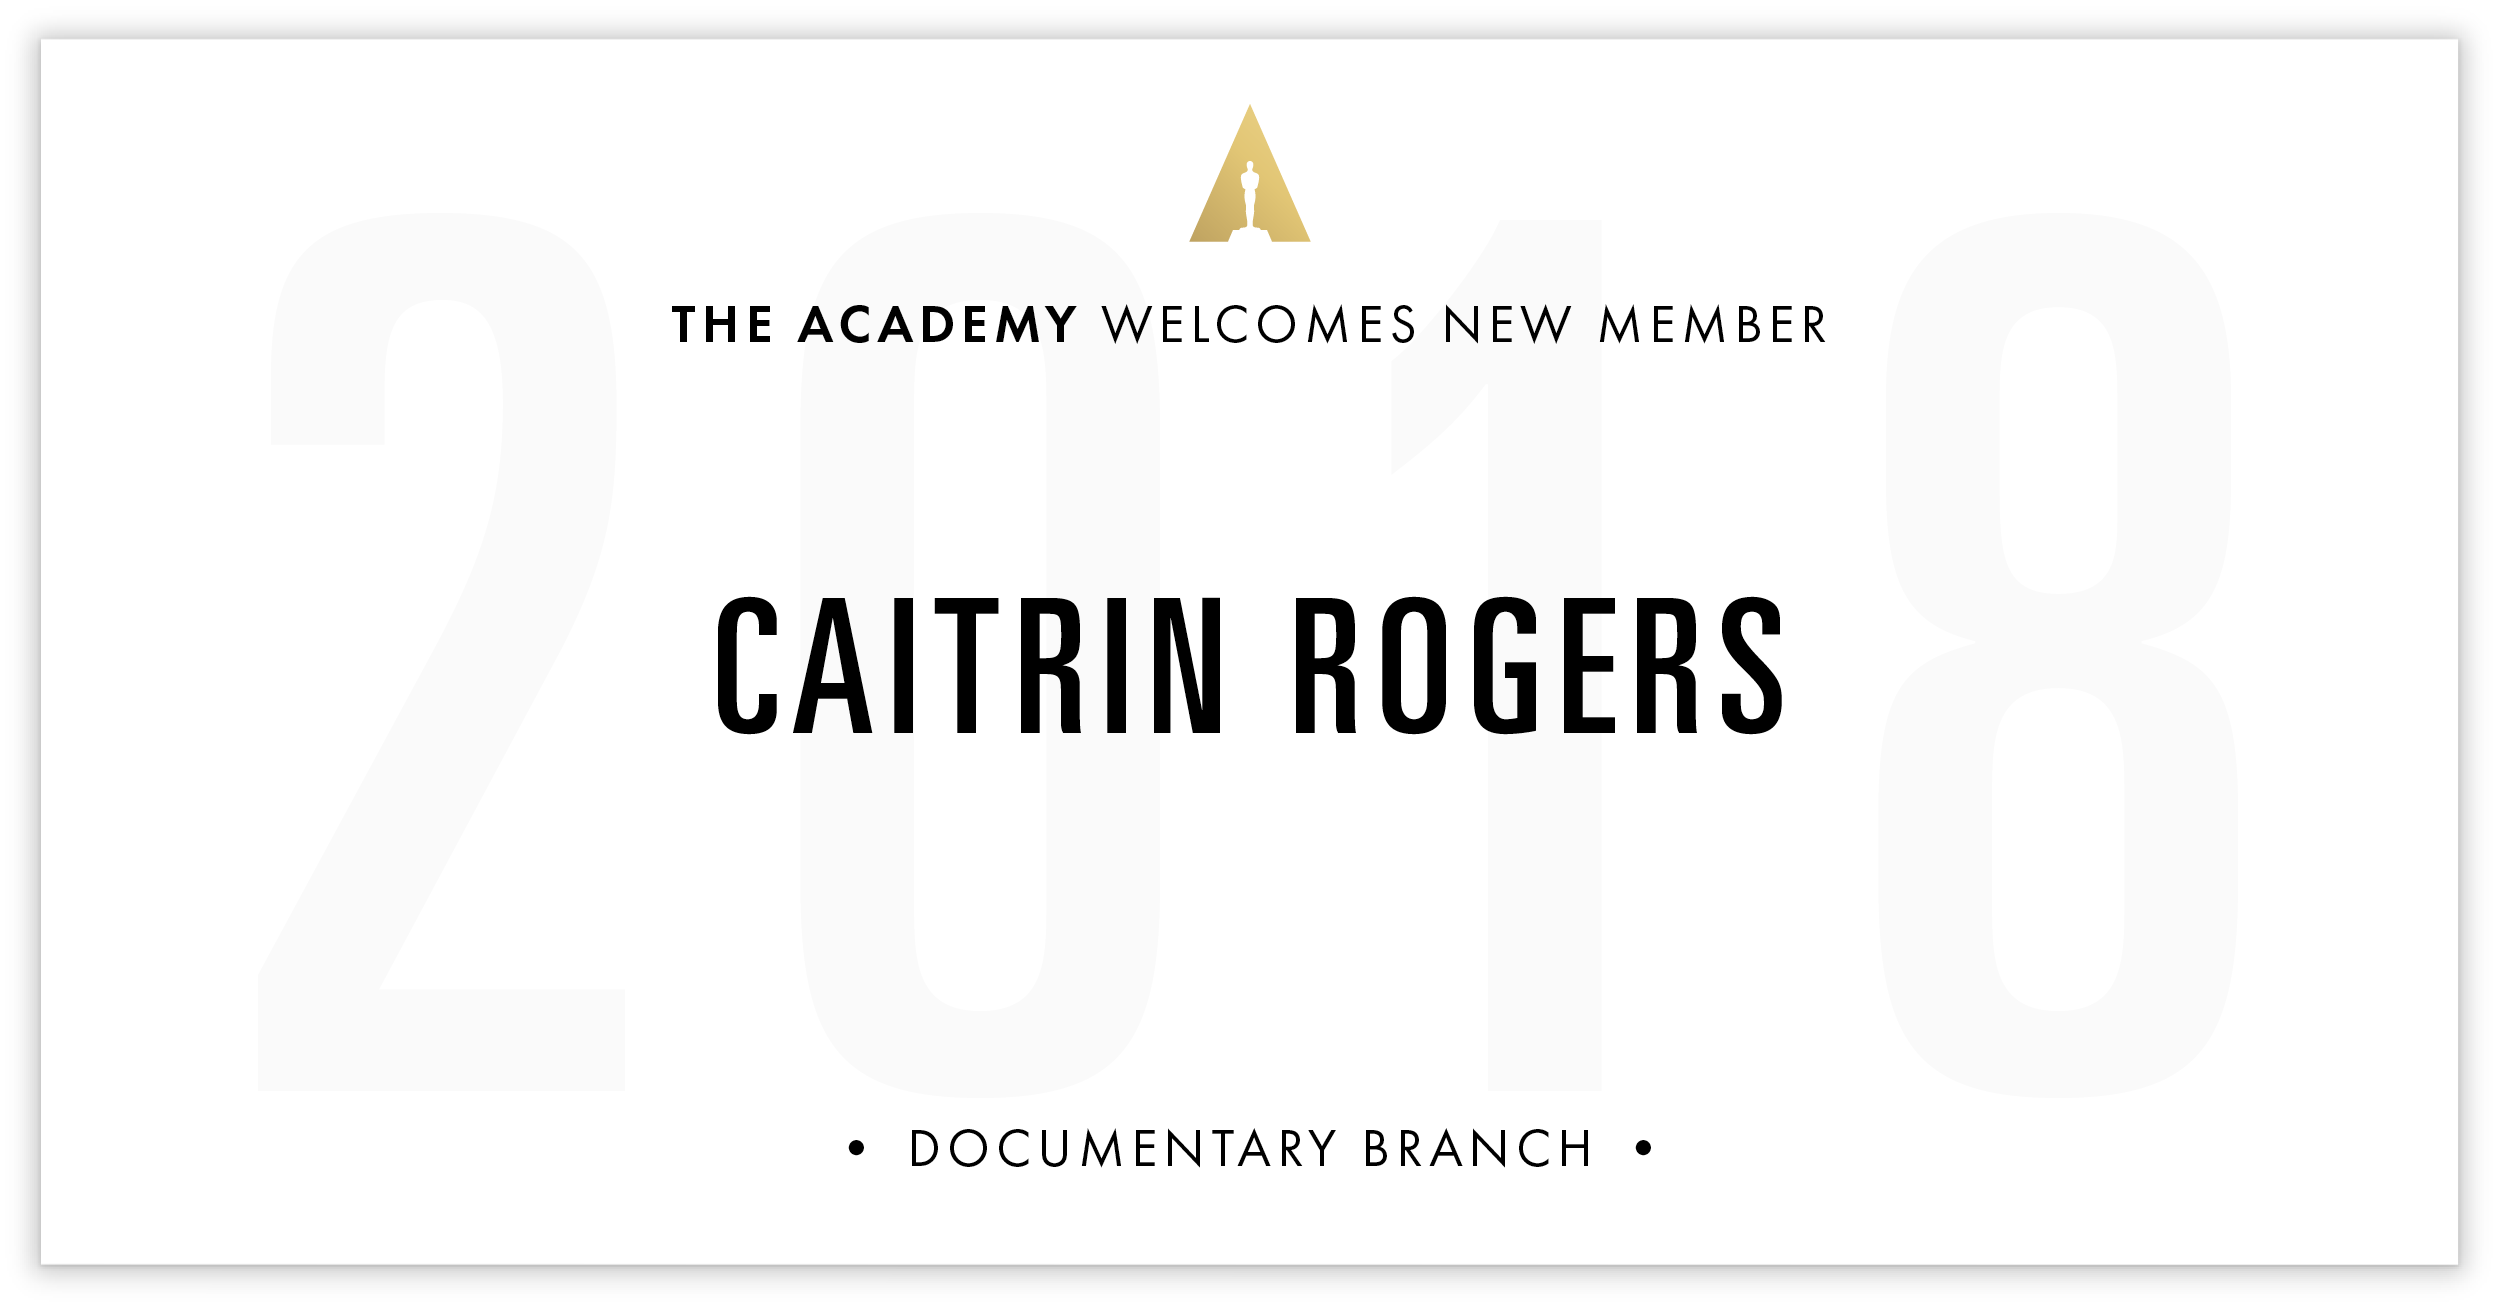 Caitrin Rogers is invited!